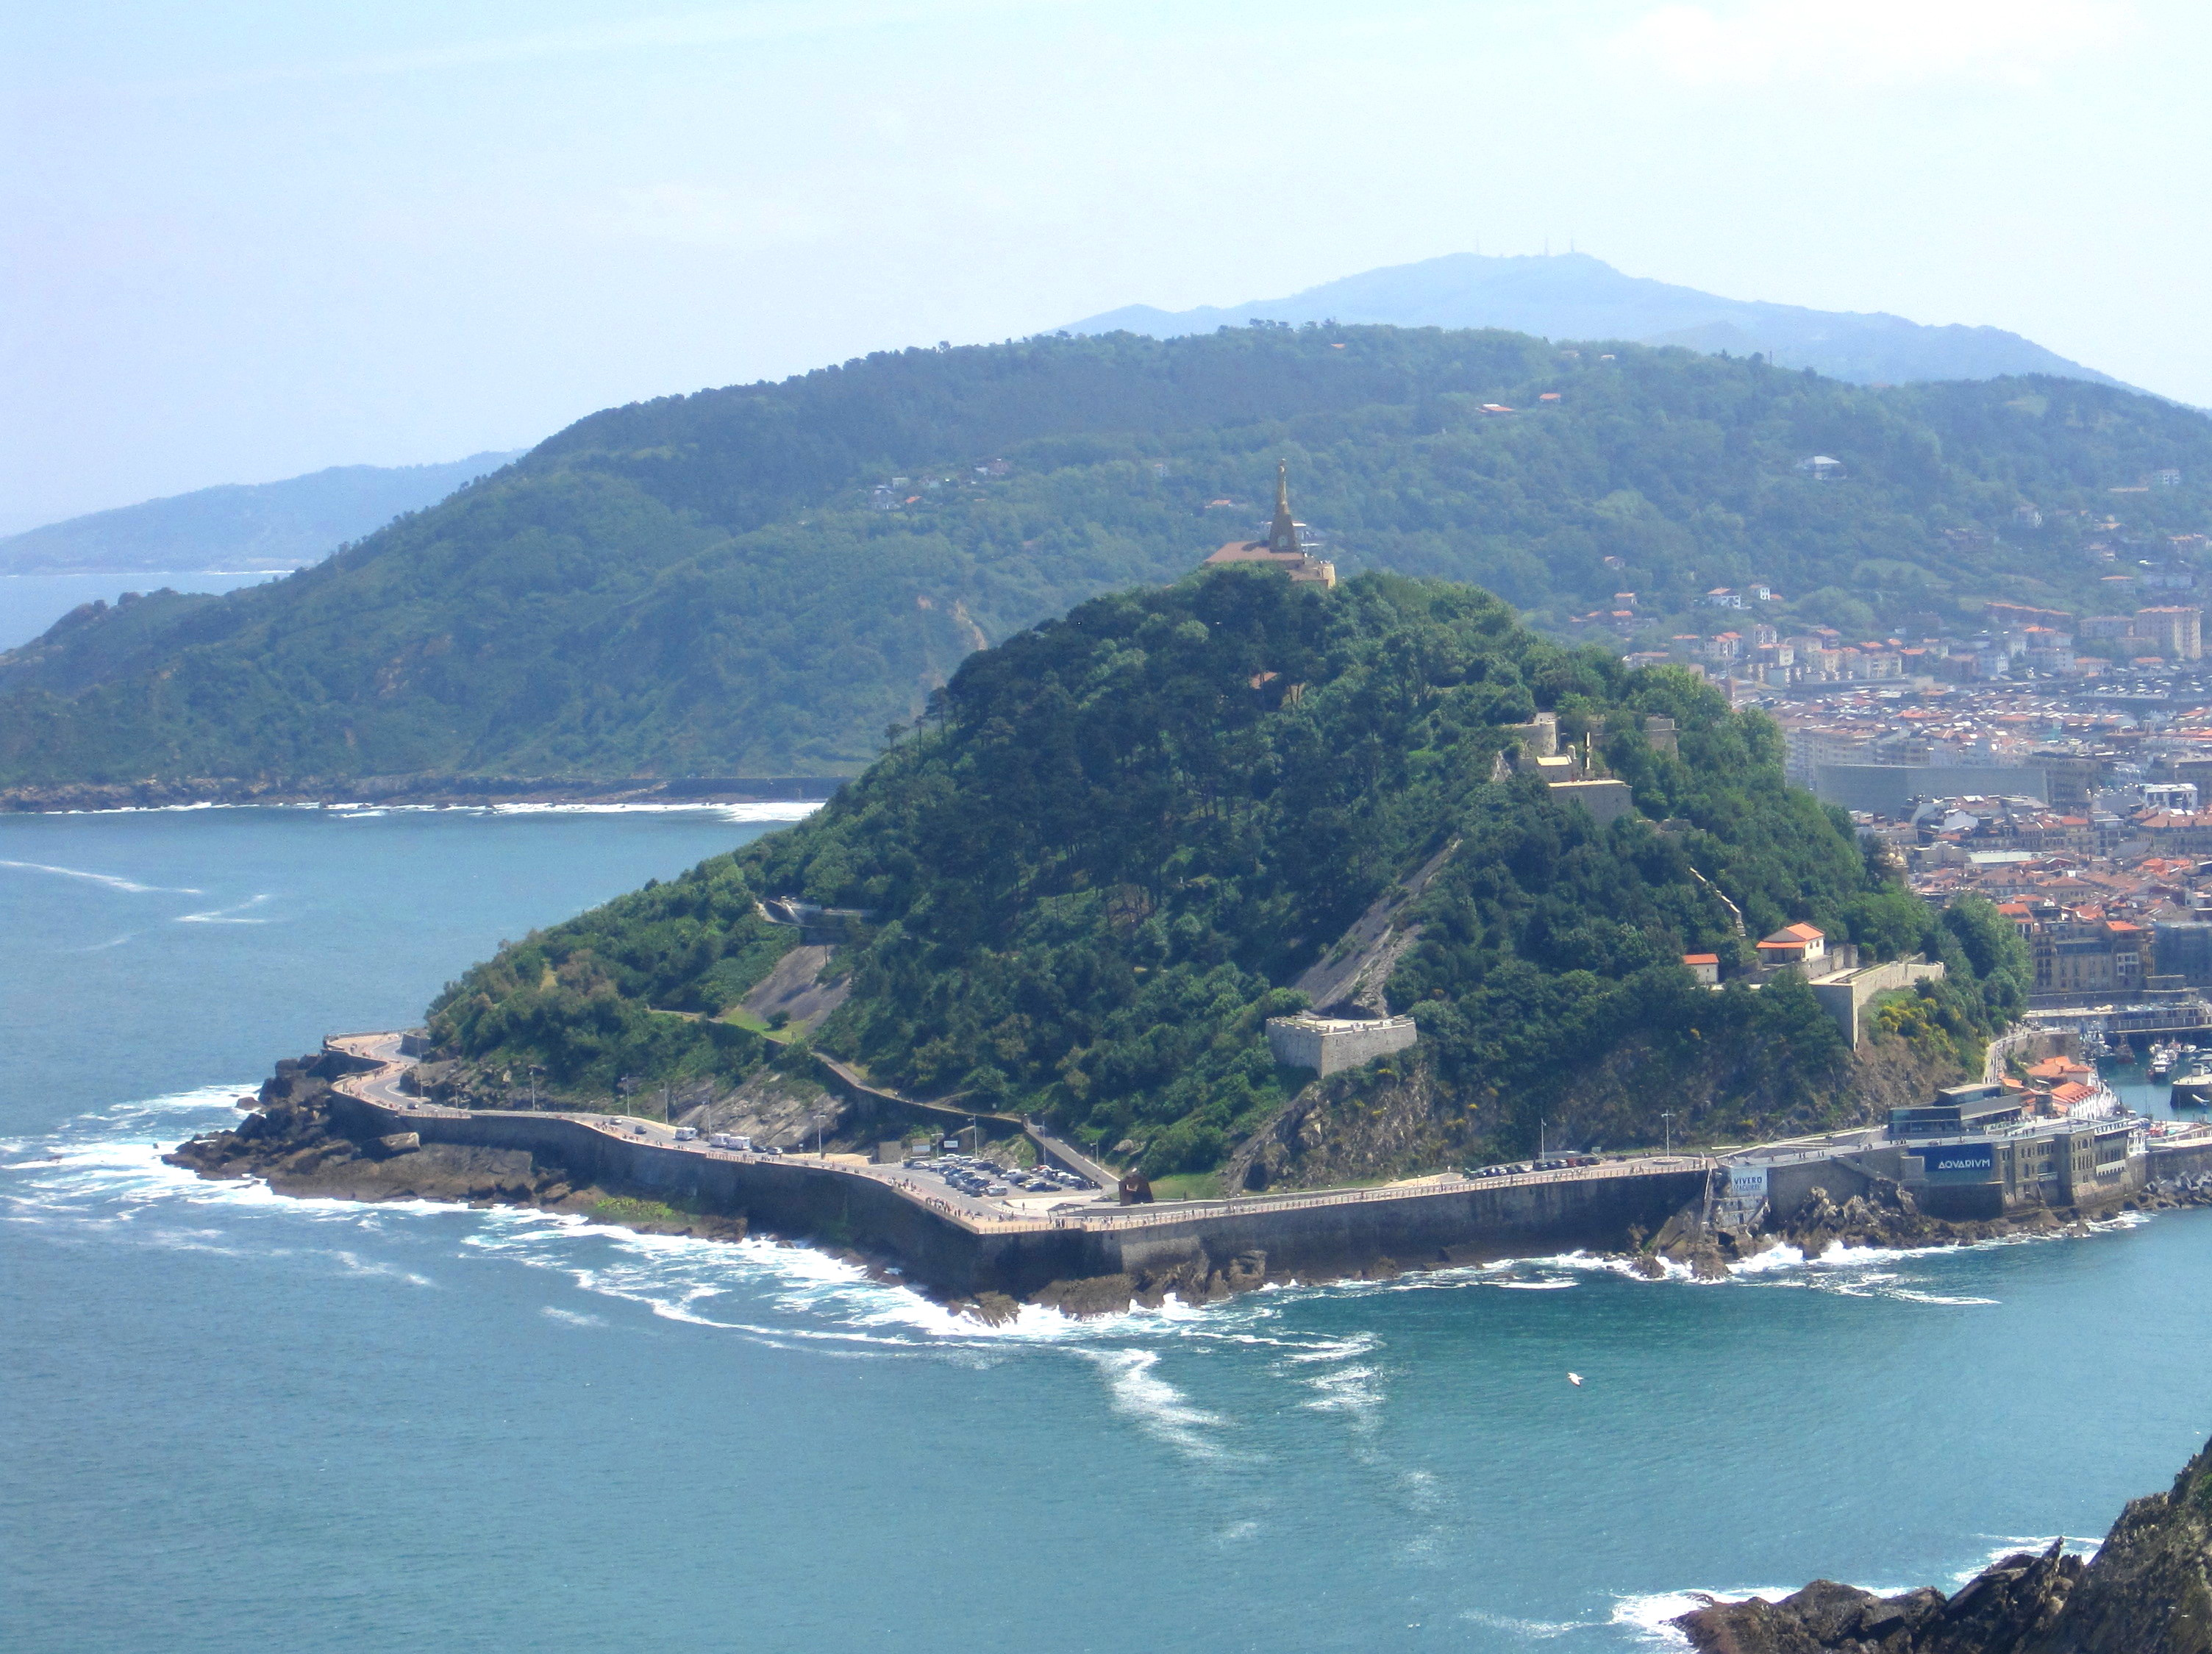 san sebastian buddhist dating site 10 most beautiful castles in spain castle of la mota is a reconstructed fortress with roots dating back to the 11th 10 top tourist attractions in san sebastian.